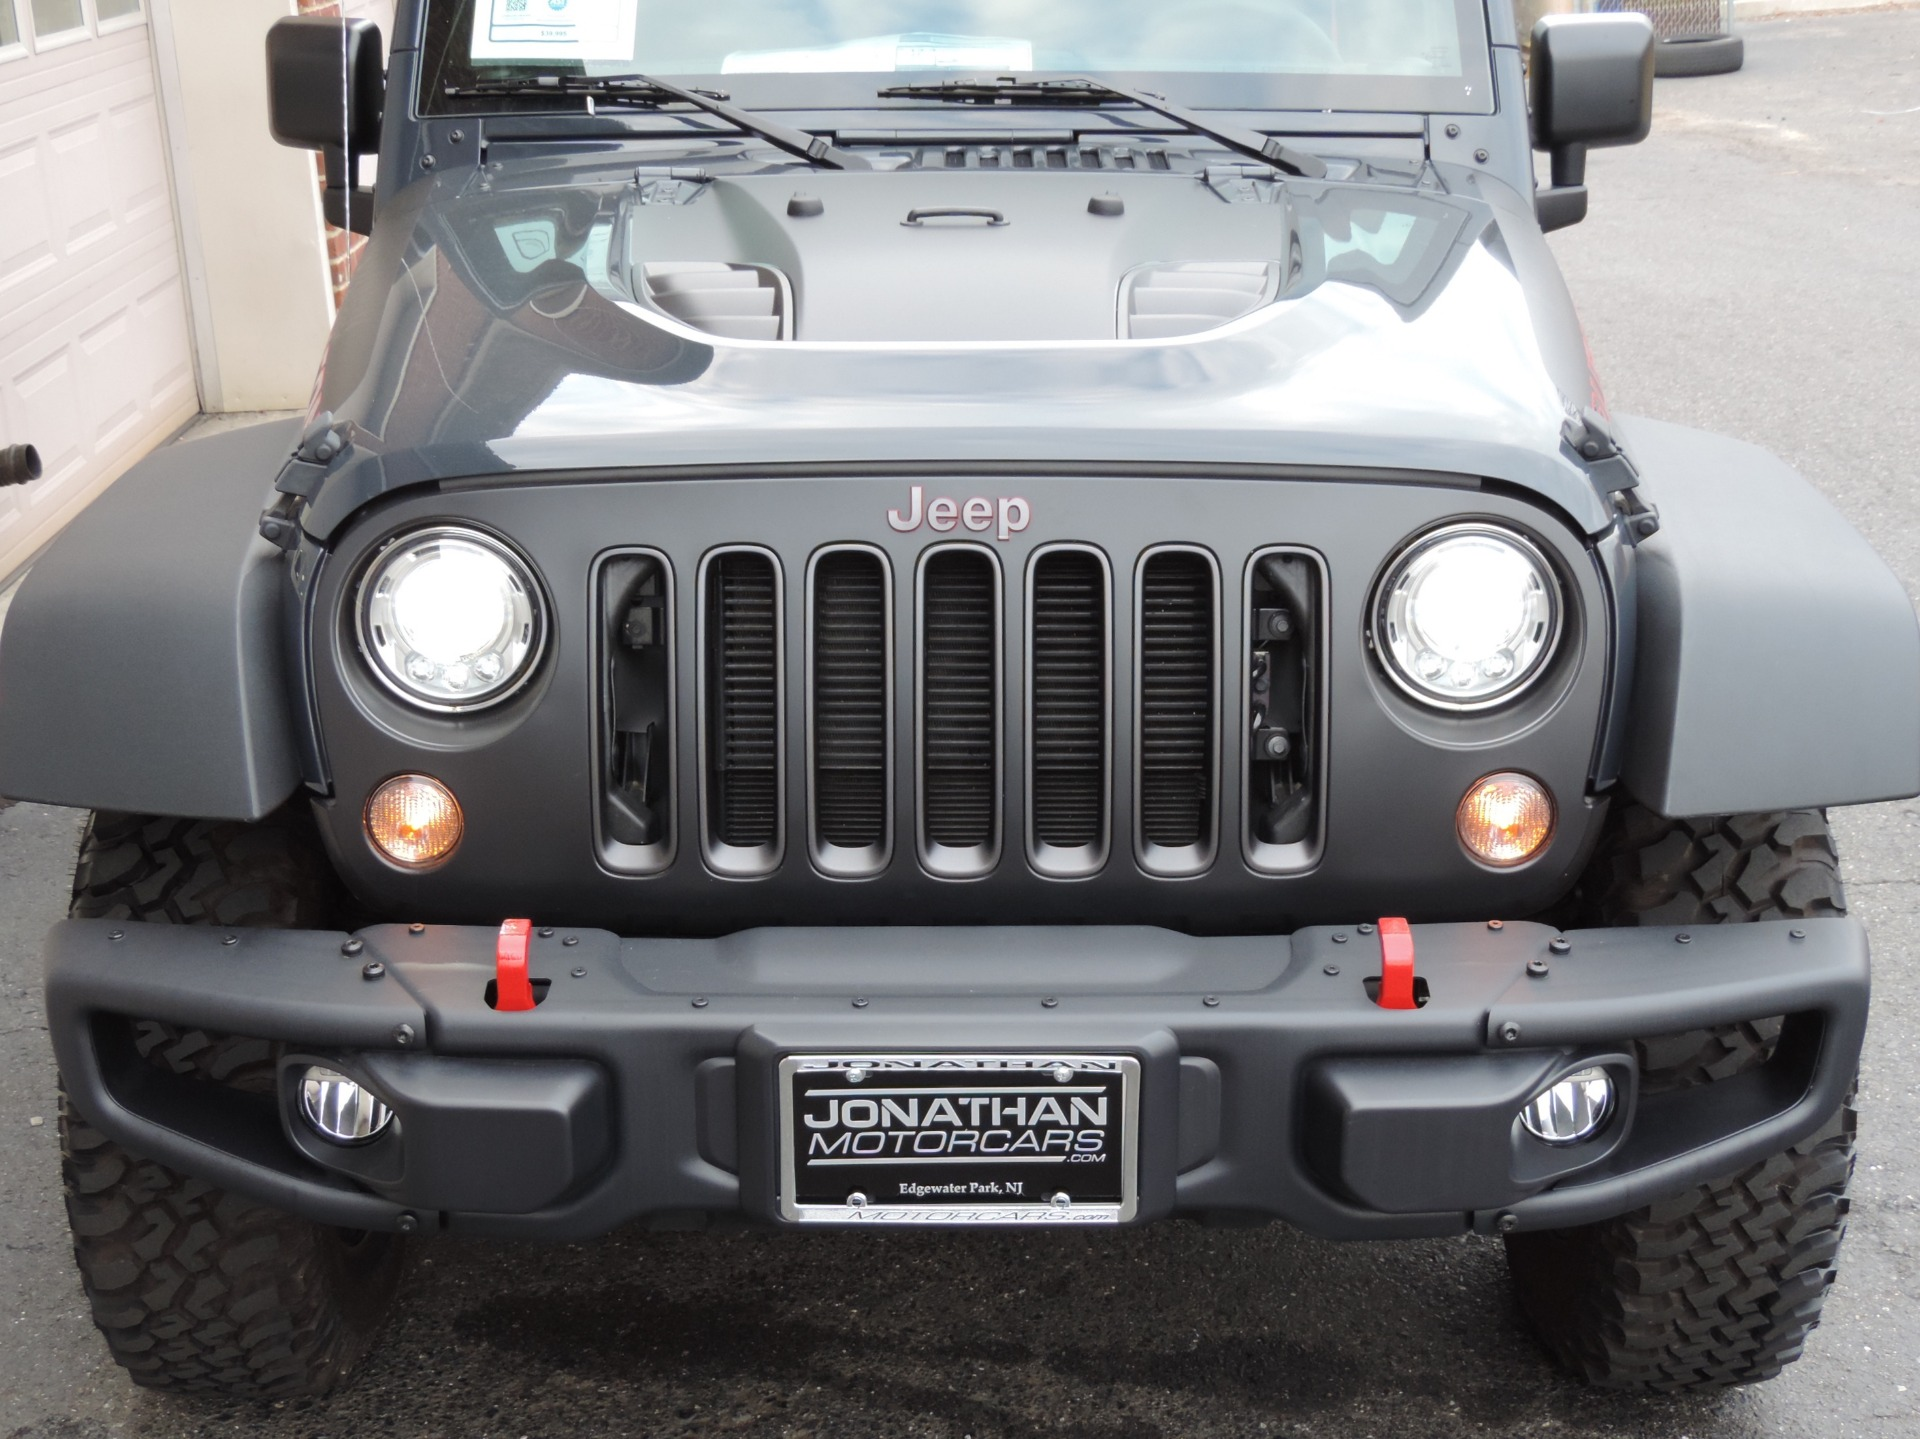 Used-2018-Jeep-Wrangler-Unlimited-Rubicon-Recon